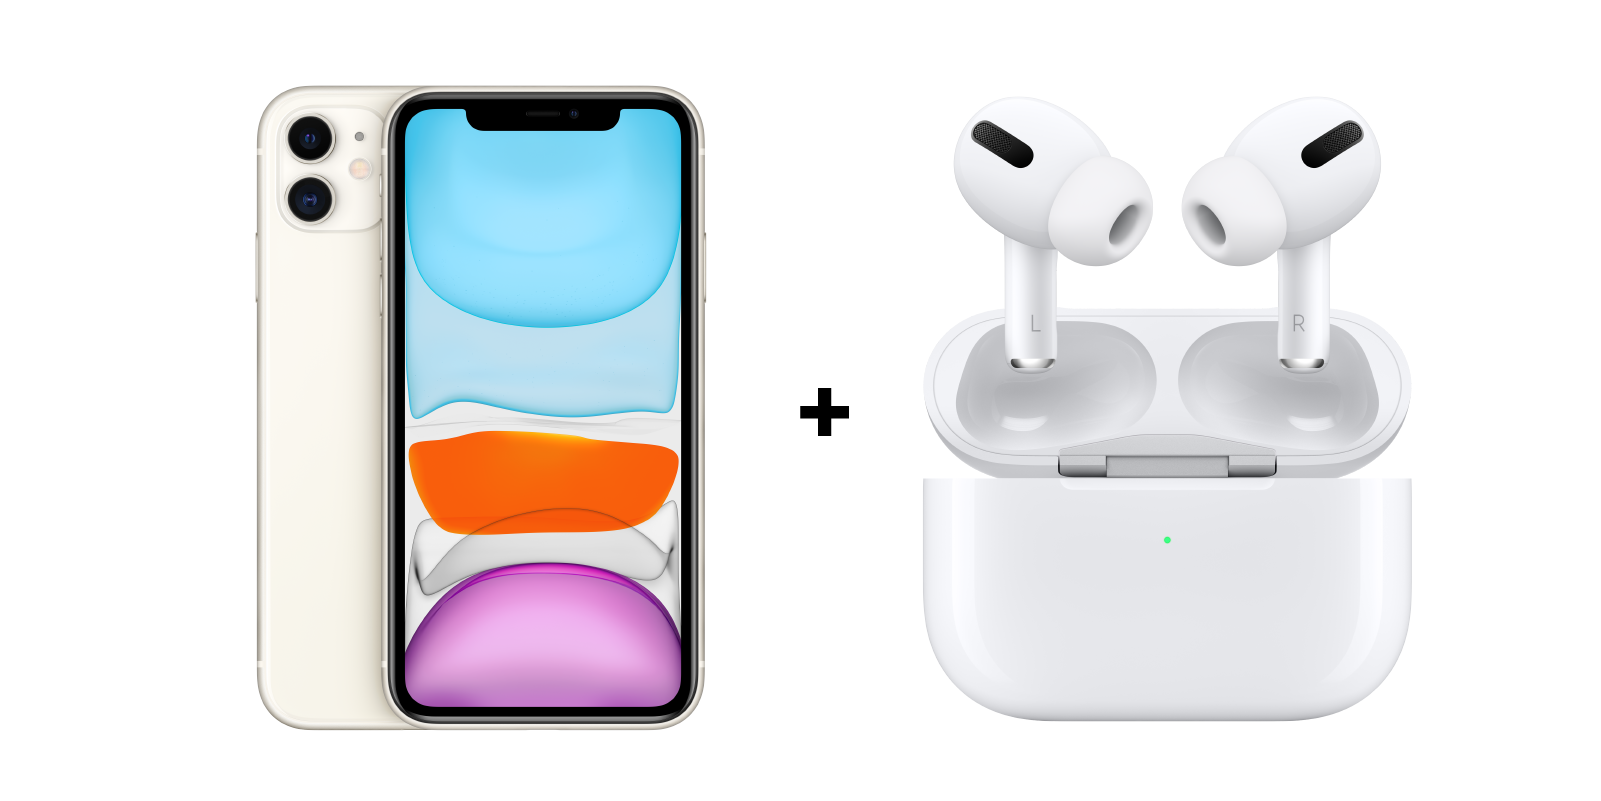 iPhone + AirPods Pro